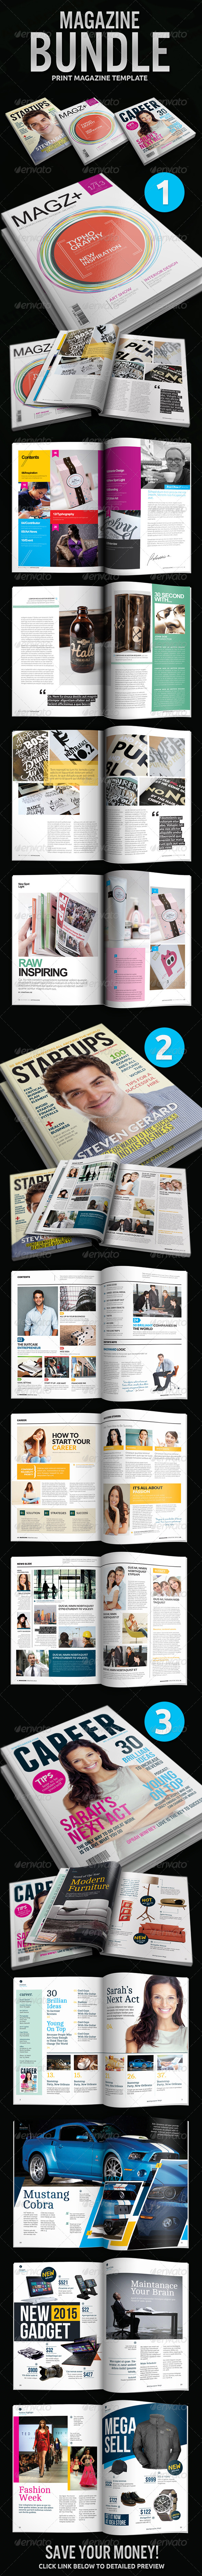 Indesign Magazine Bundle - Magazines Print Templates